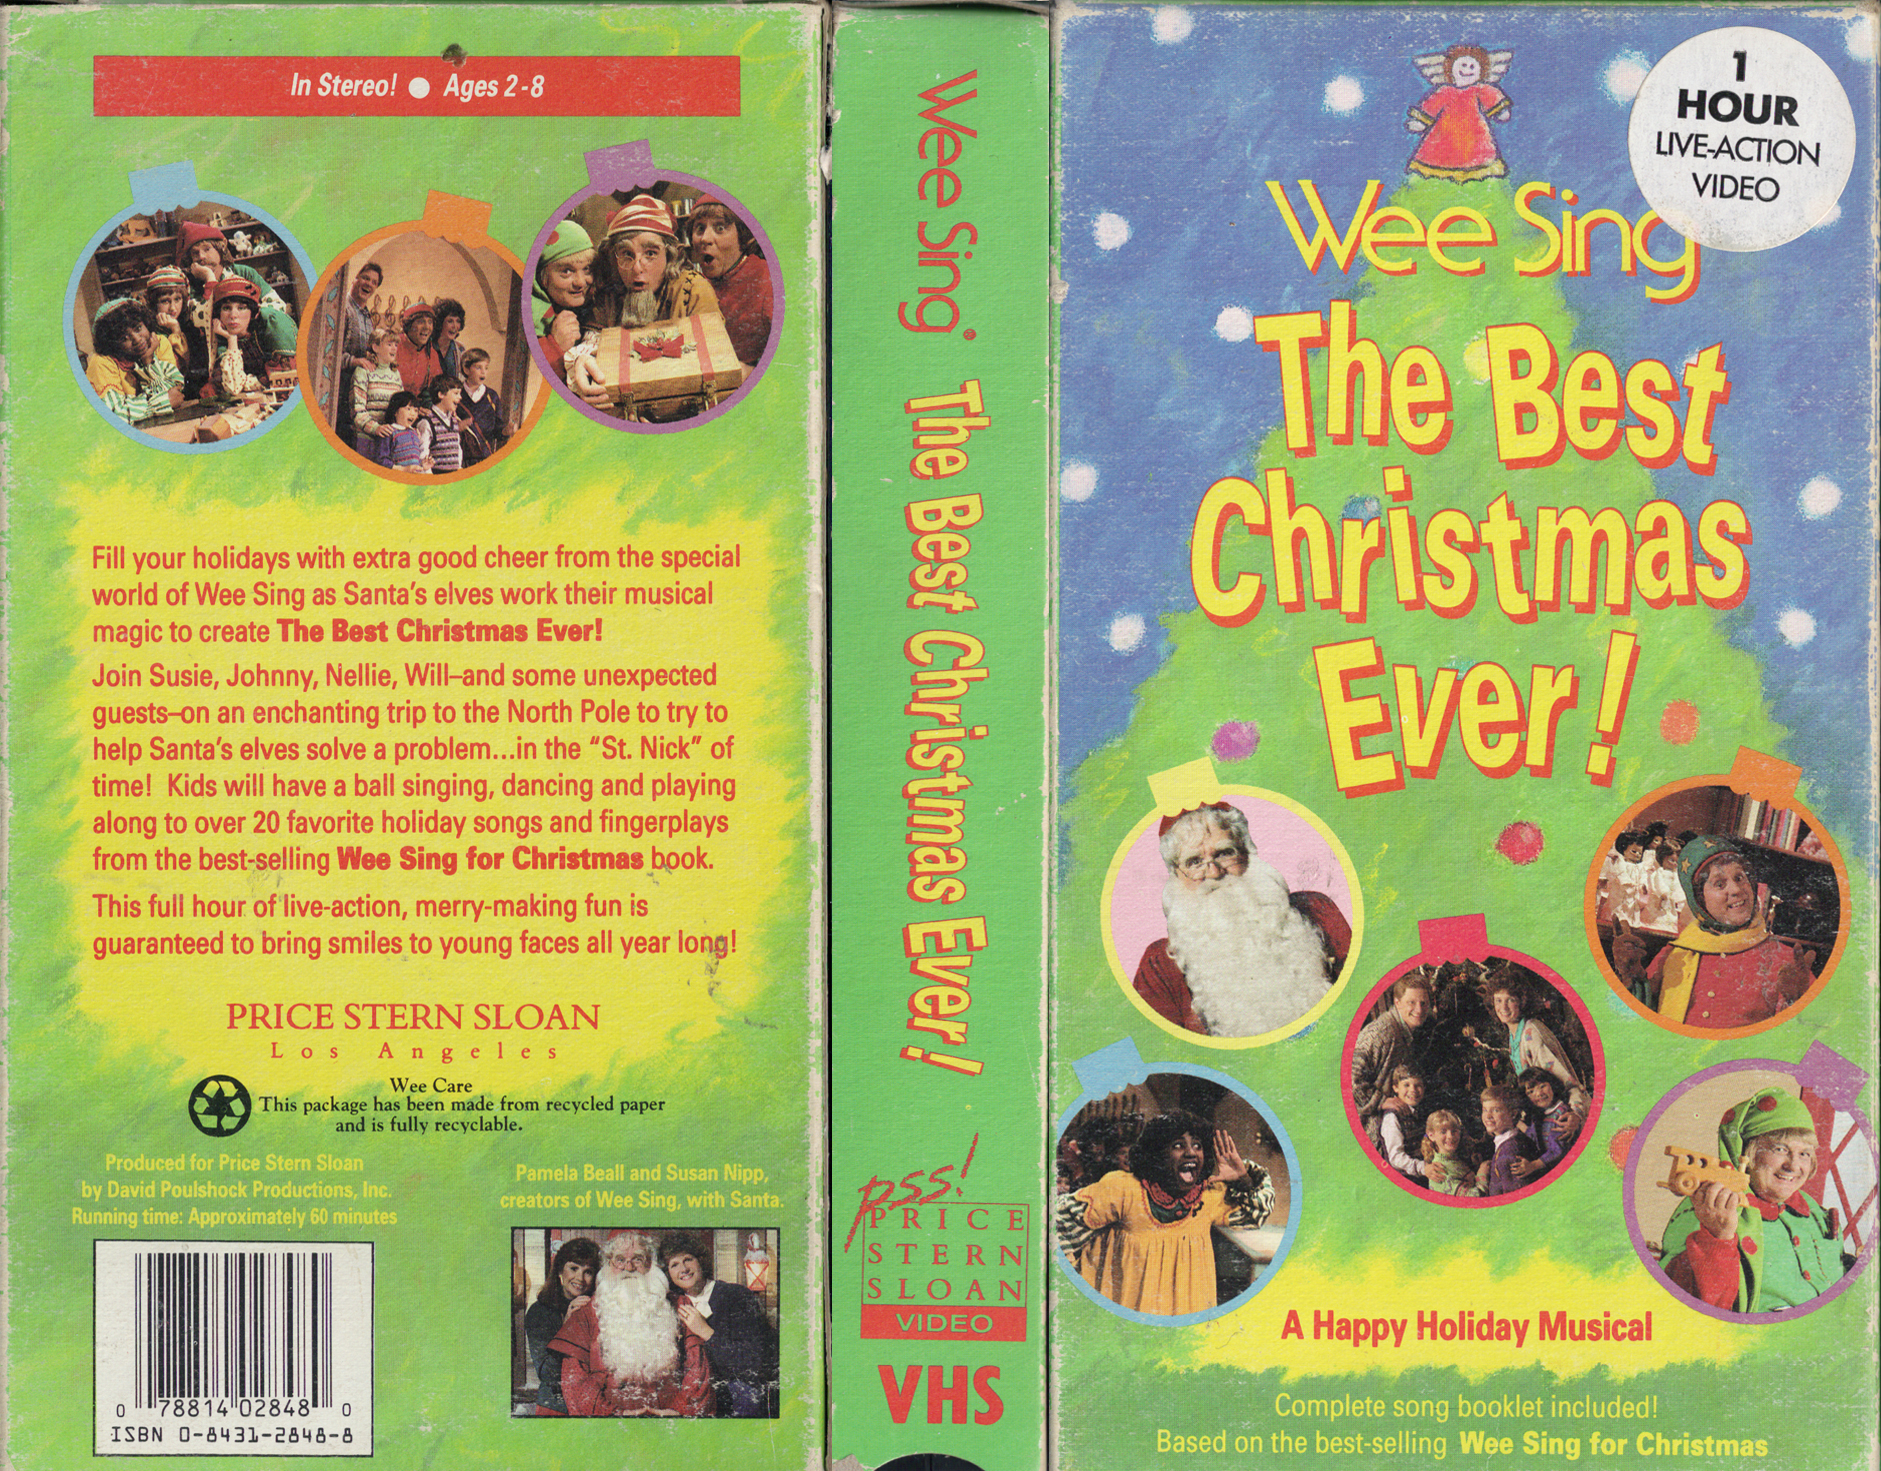 Wee Sing The Best Christmas Ever Vhs.Retro Daze Vhs Covers